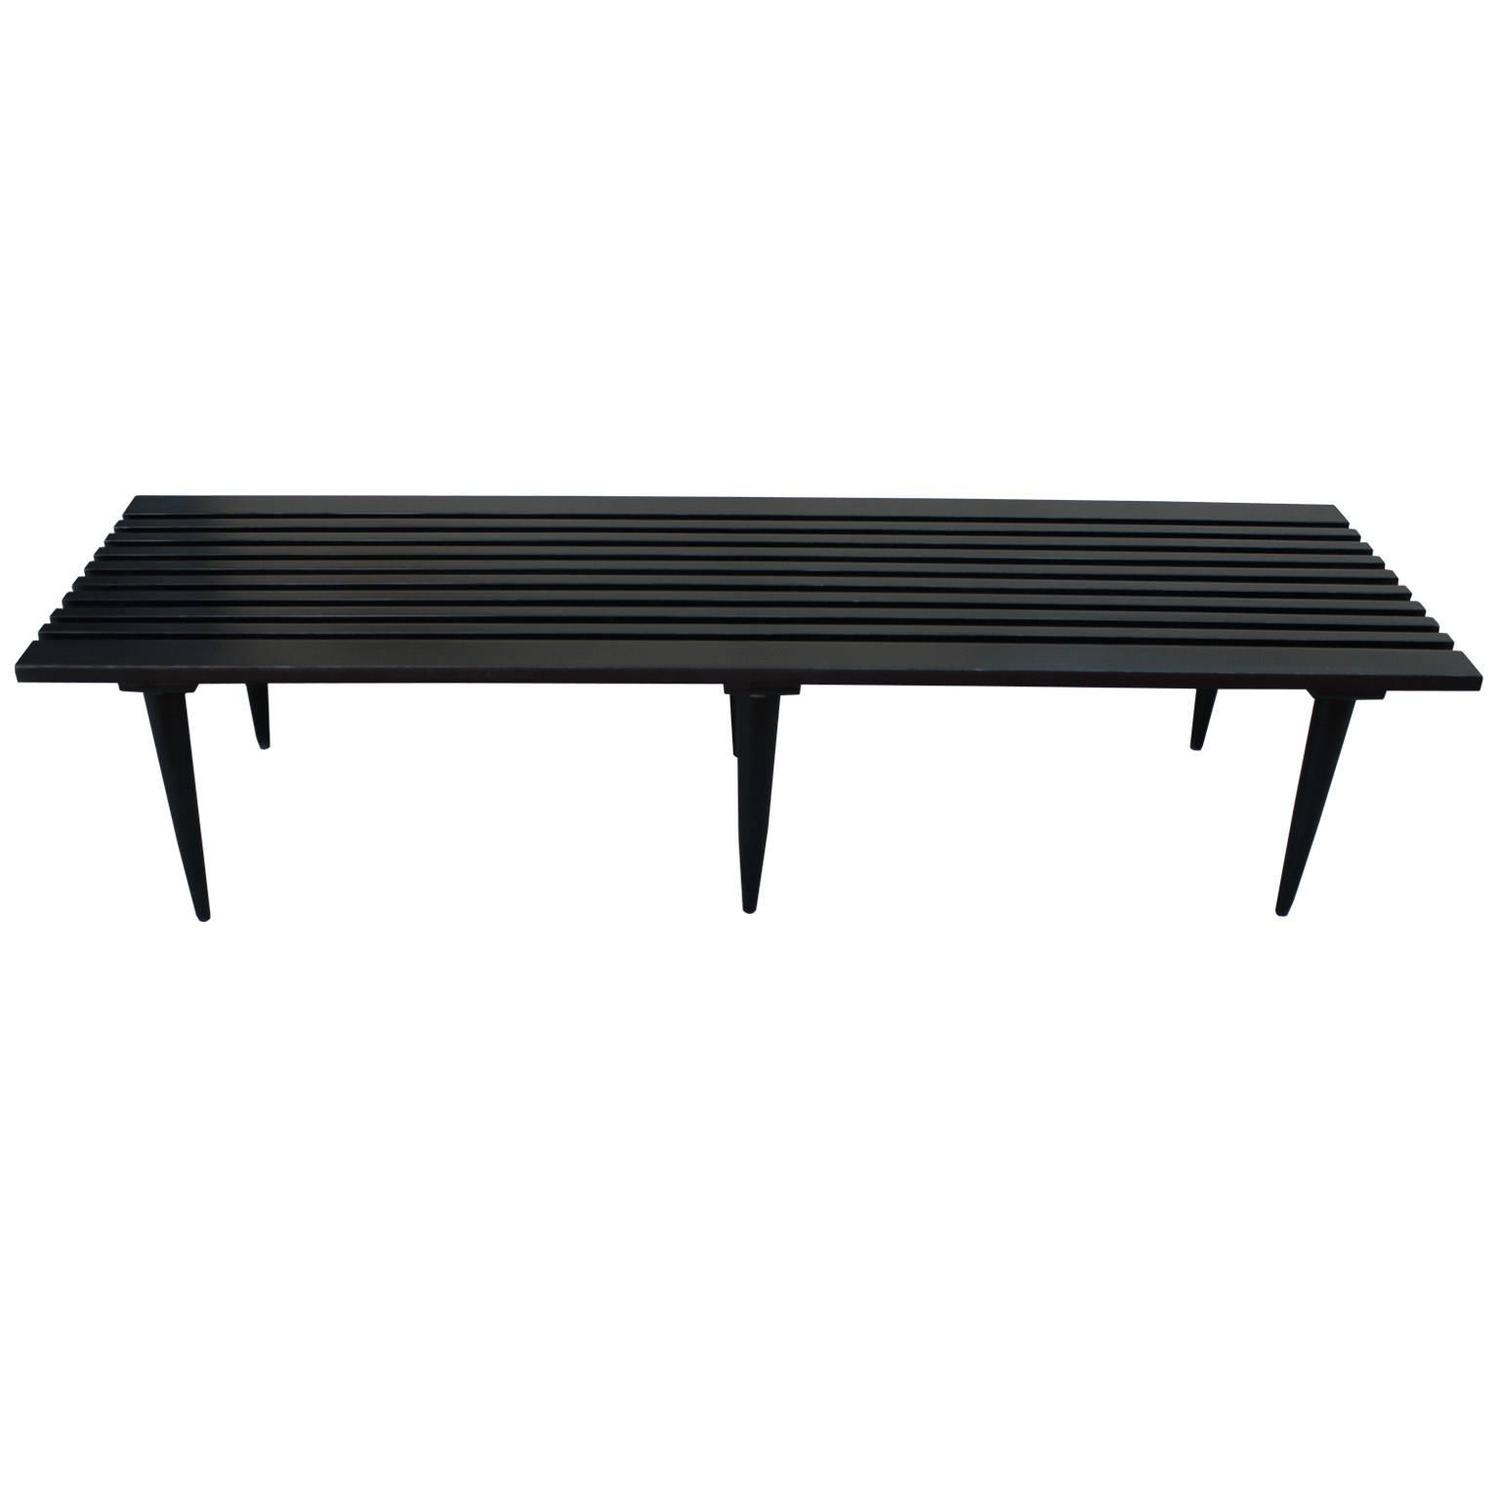 Sleek black slatted coffee table or bench for sale at 1stdibs Sleek coffee table